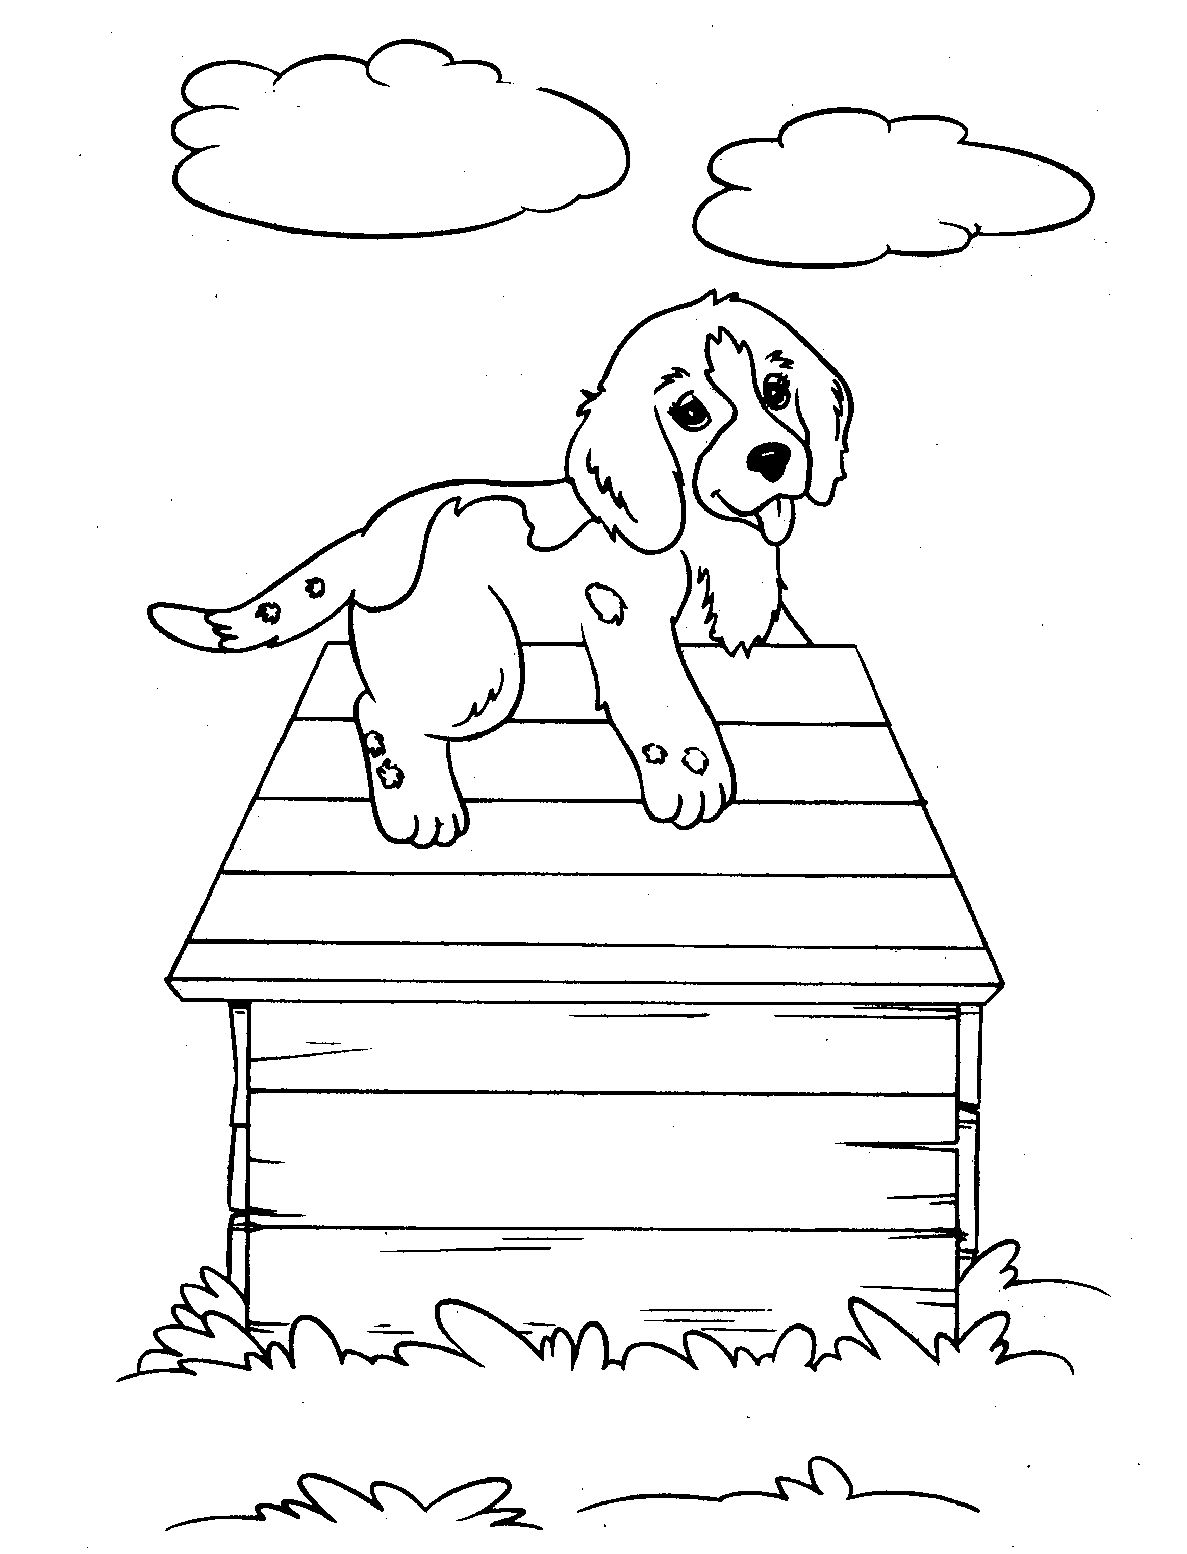 Exclusive Image Of Puppy Dog Coloring Pages Entitlementtrap Com In 2020 Puppy Coloring Pages Dog Coloring Page Dog Coloring Book [ 1554 x 1187 Pixel ]